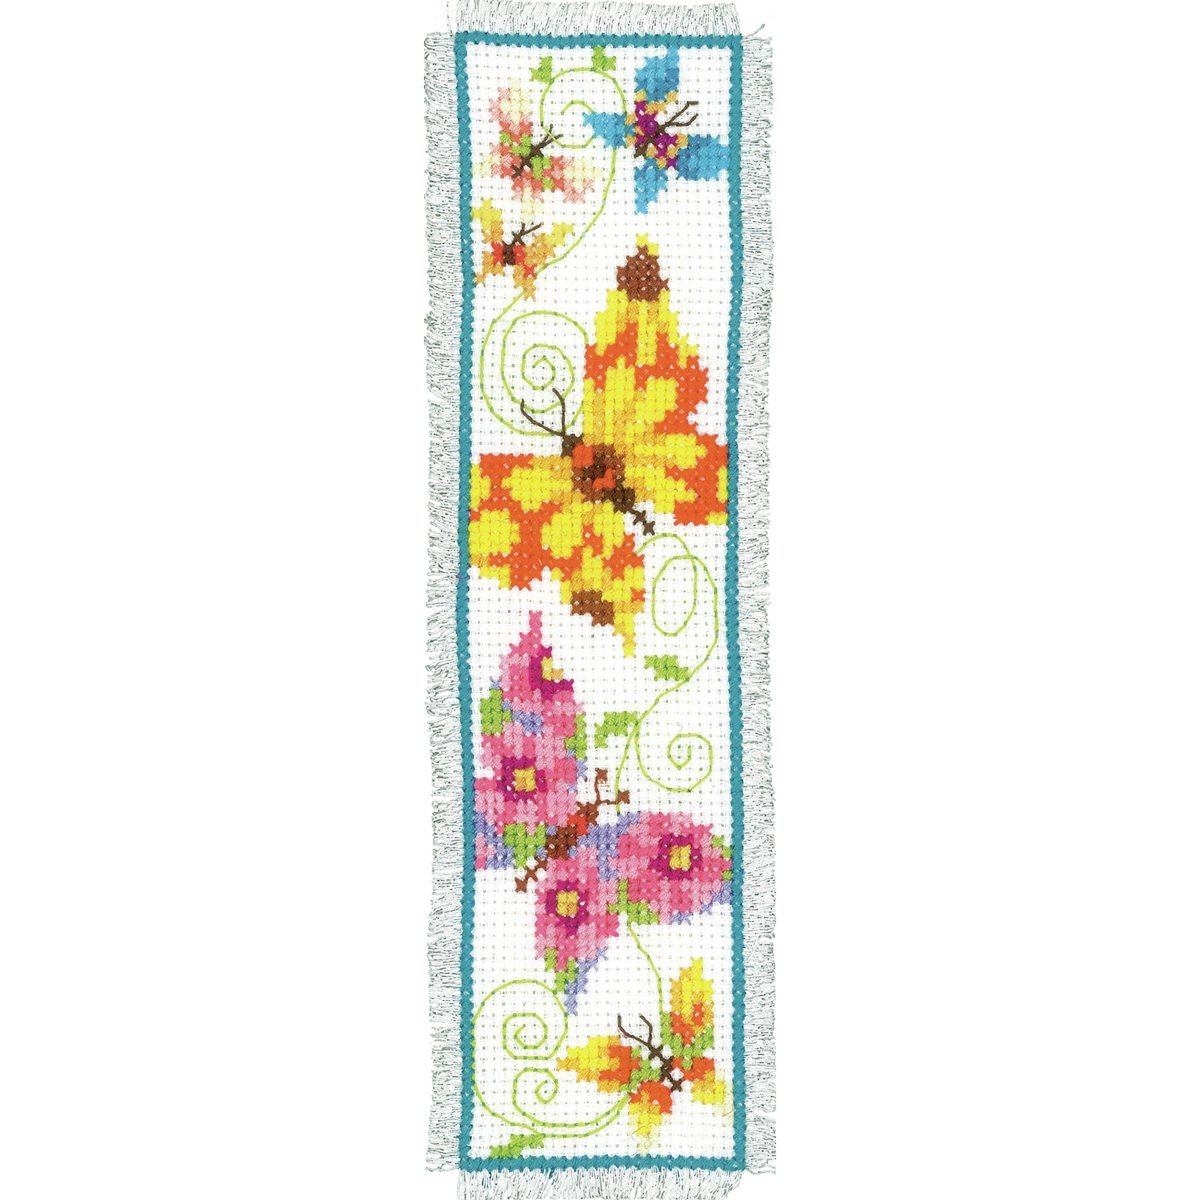 Vervaco PN-0021728 Butterflies 2 Bookmark Counted Cross Stitch Kit